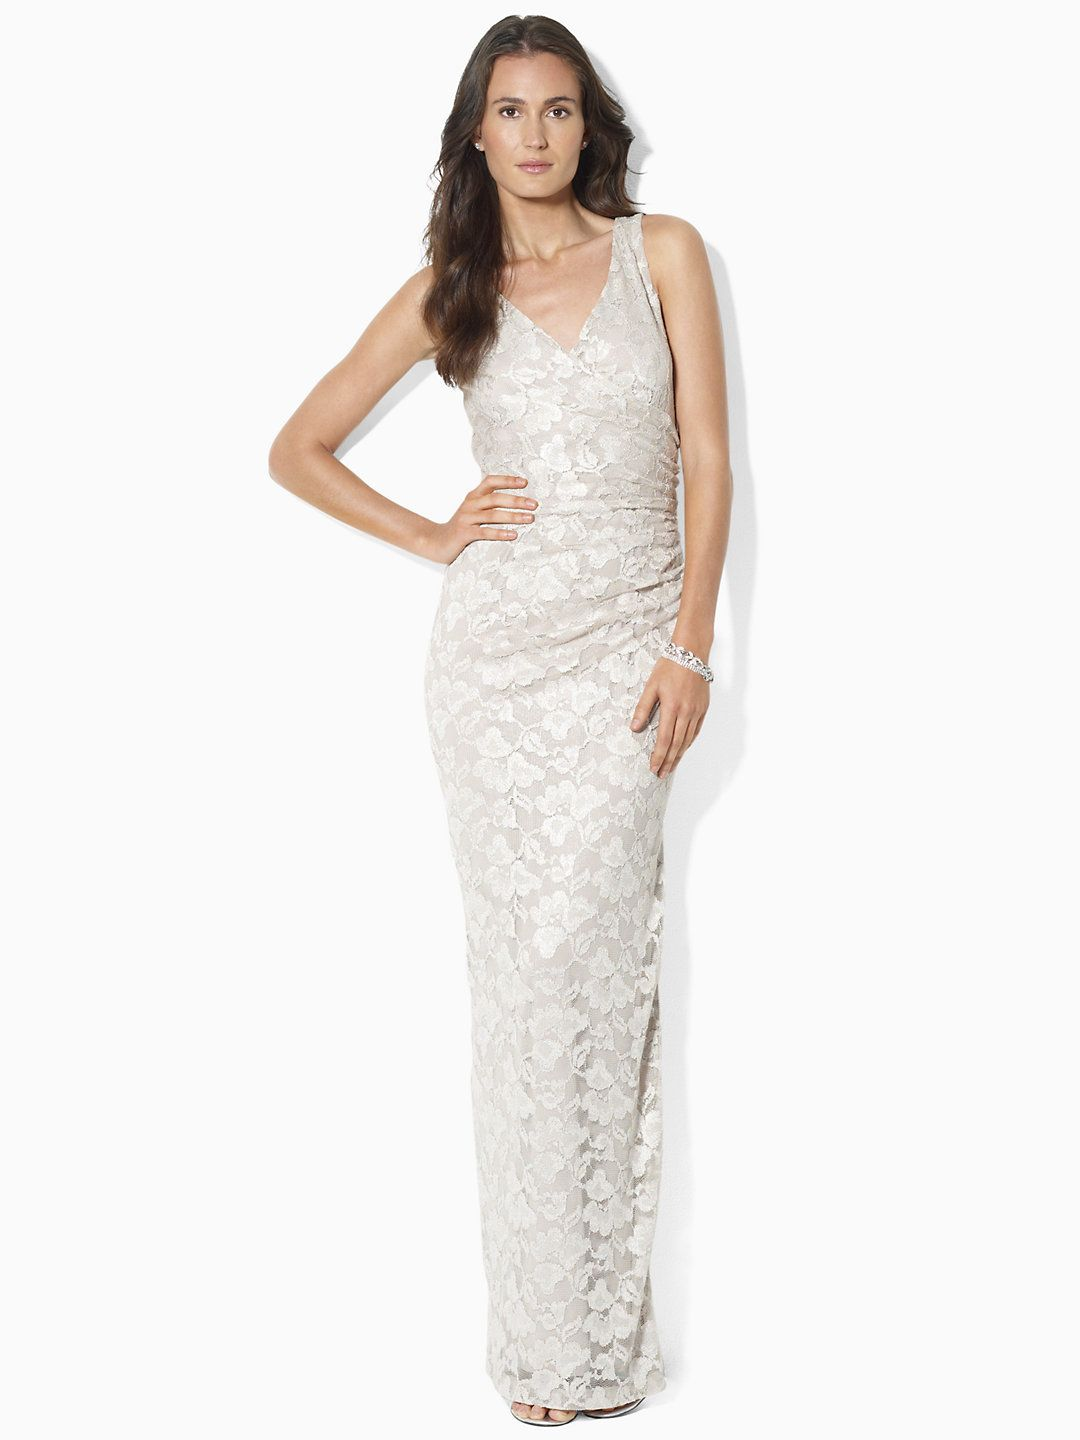 BUDGET BRIDAL // LOVE THIS DRESS: Sleeveless Lace Gown - Sale $120 ...